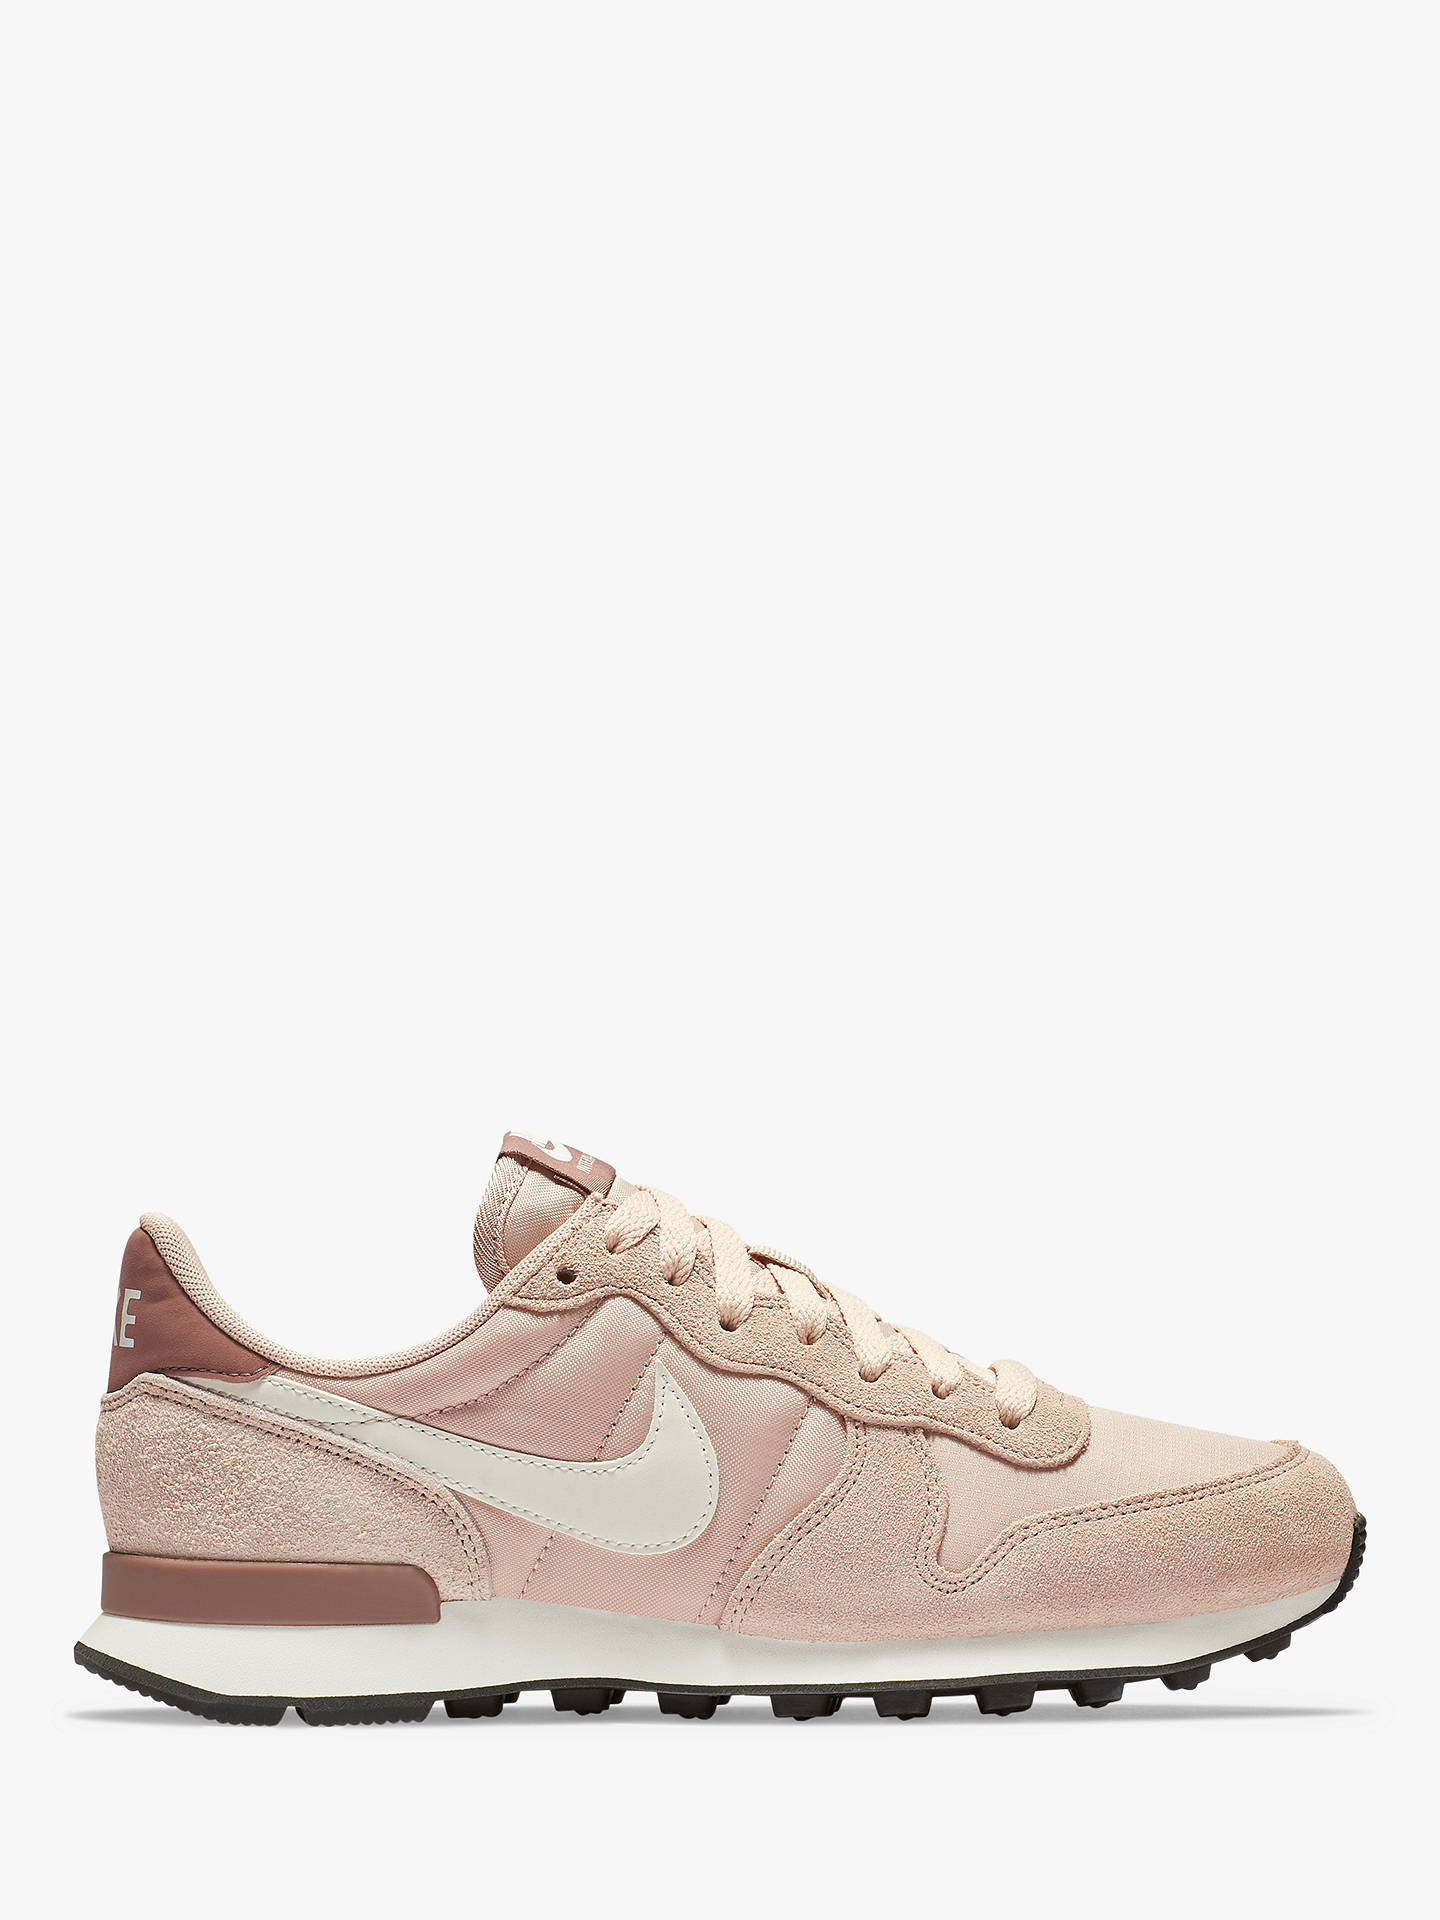 new style 1750e e8021 Buy Nike Internationalist Women s Trainers, Particle Beige Summit  White Smokey Mauve, 4 ...